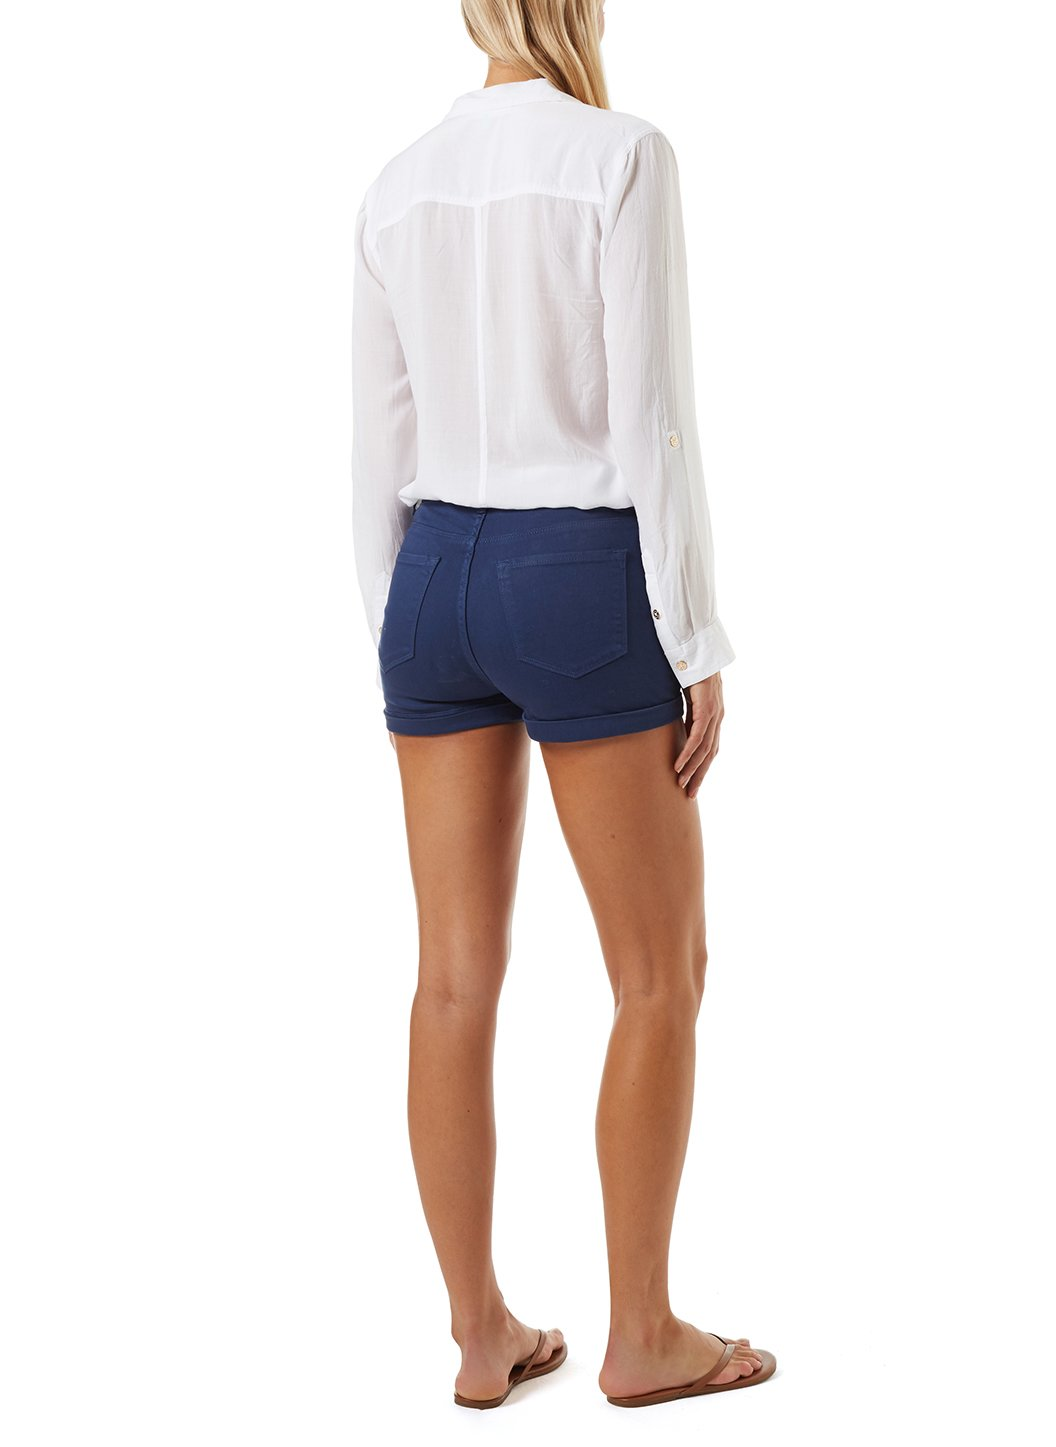 Yanni Navy Shorts